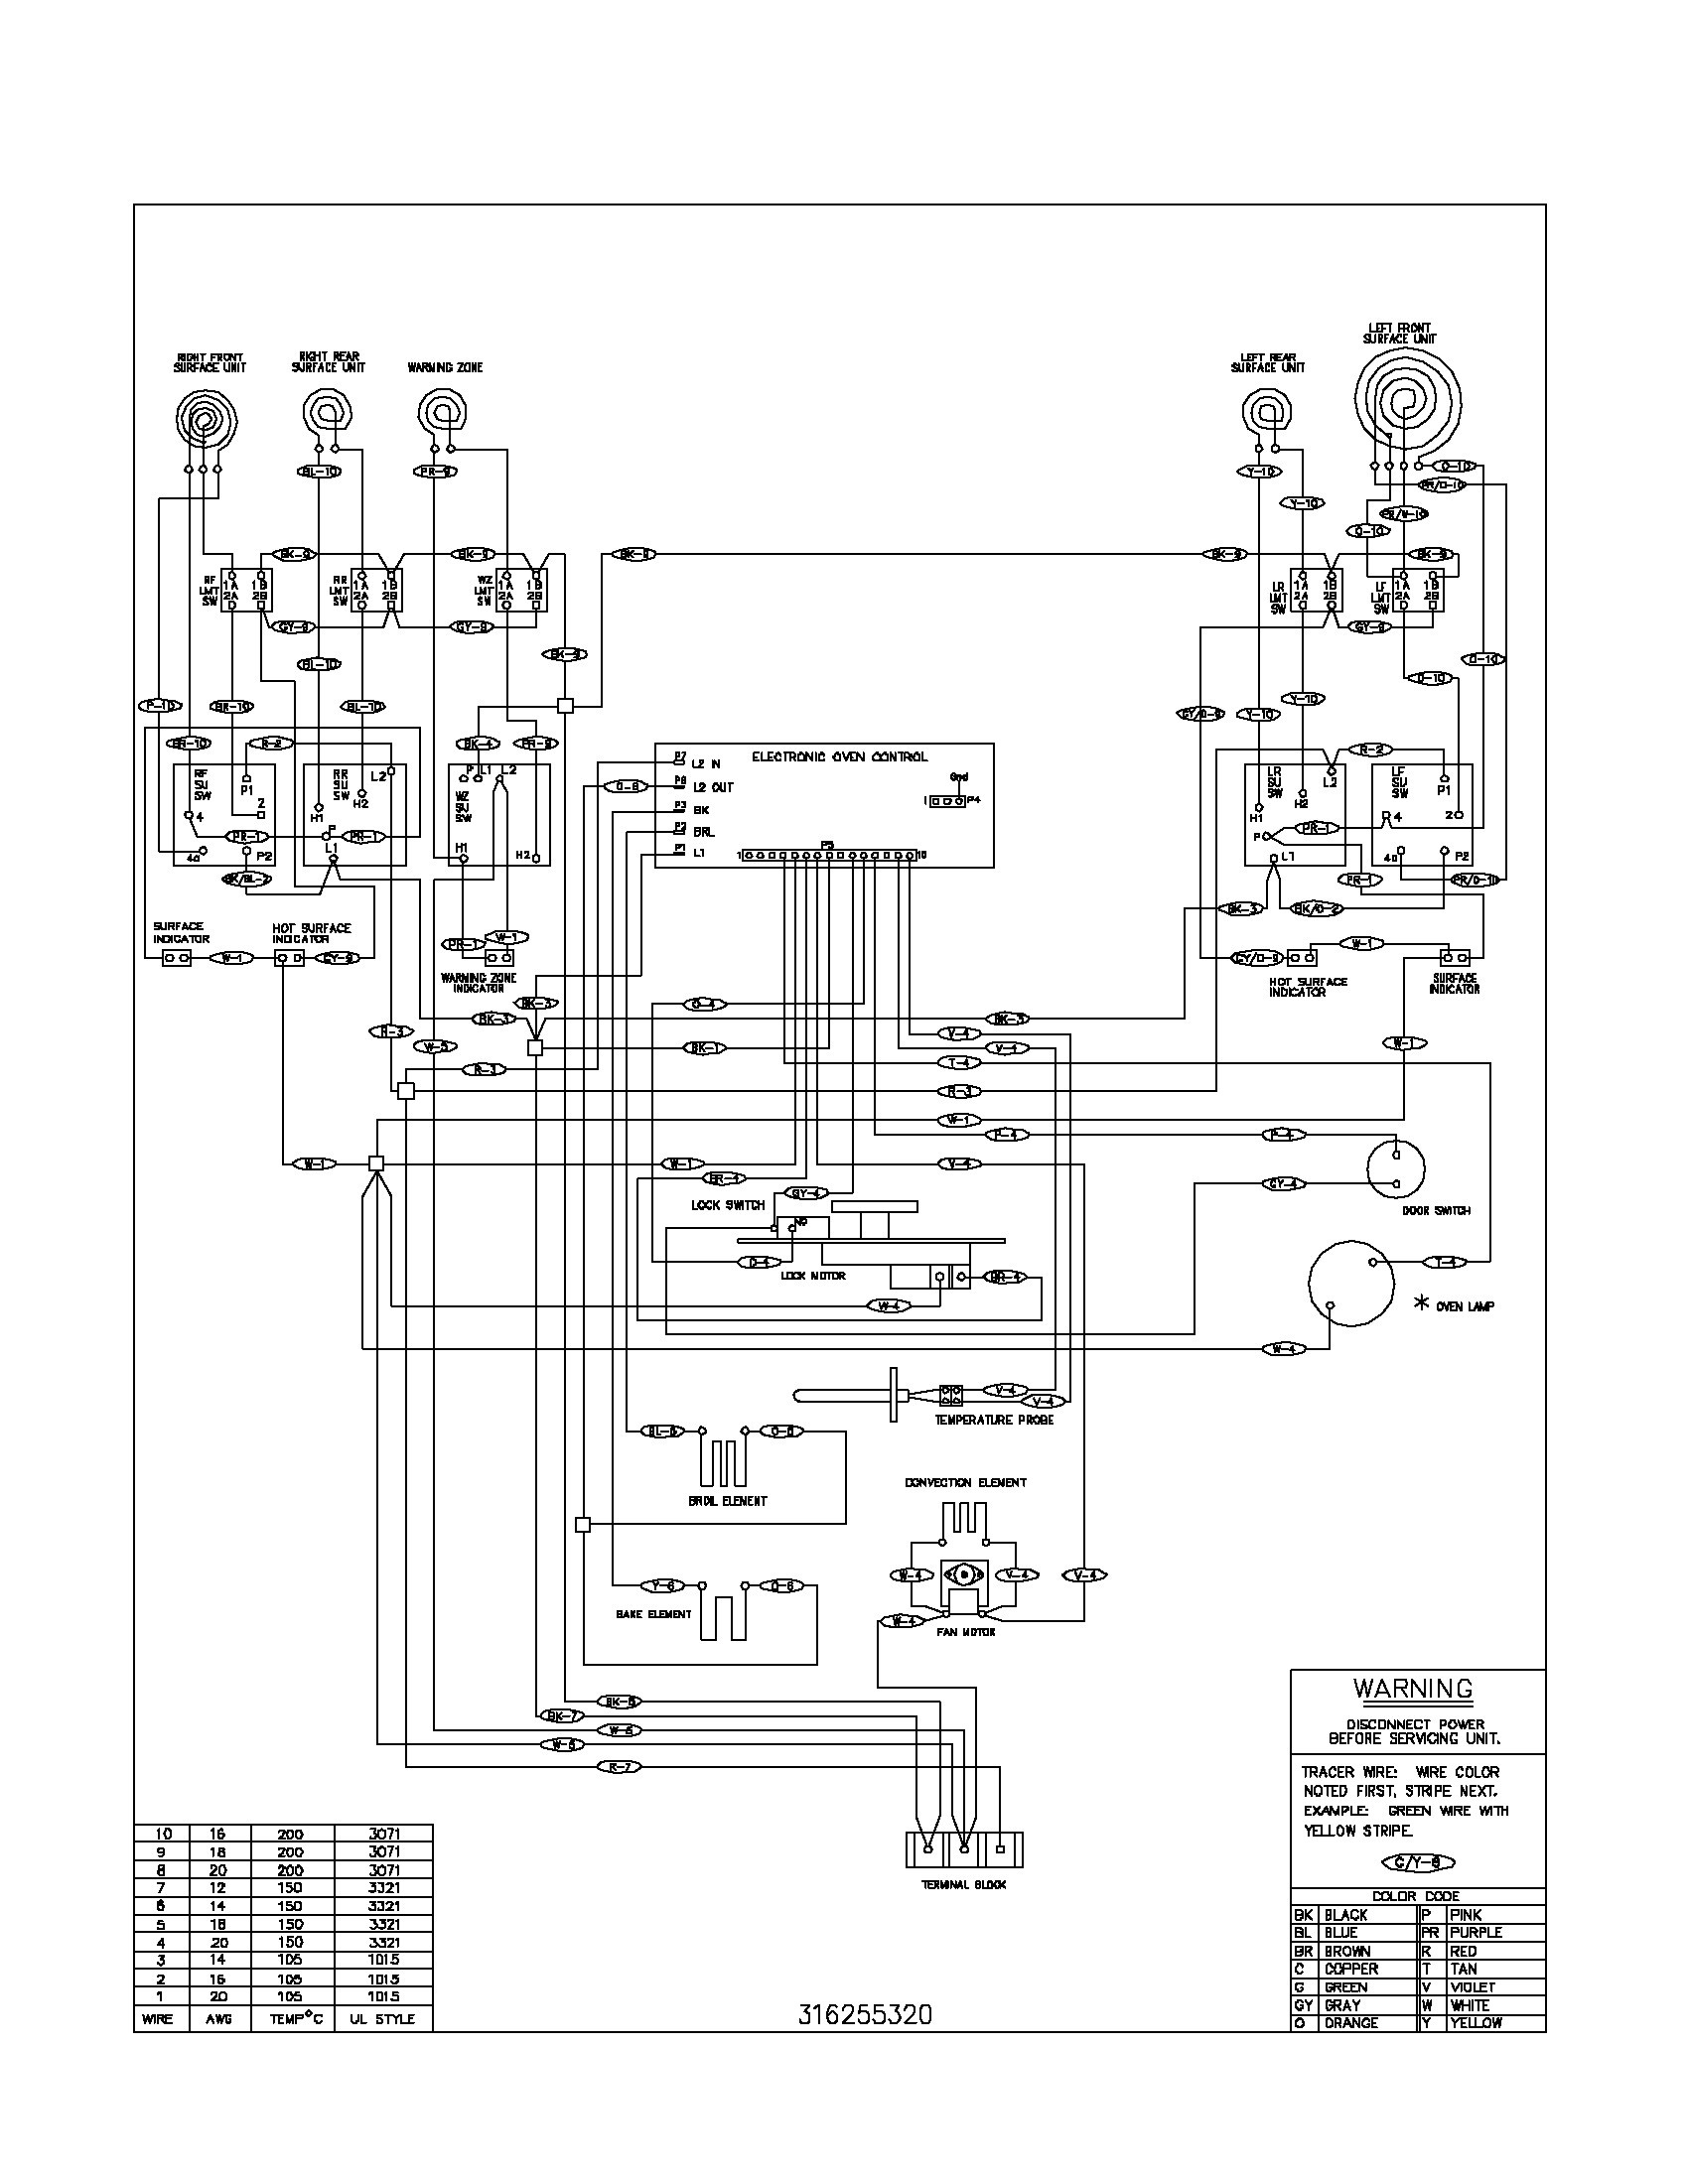 Makita Switch Wiring Free Download Wiring Diagram Schematic